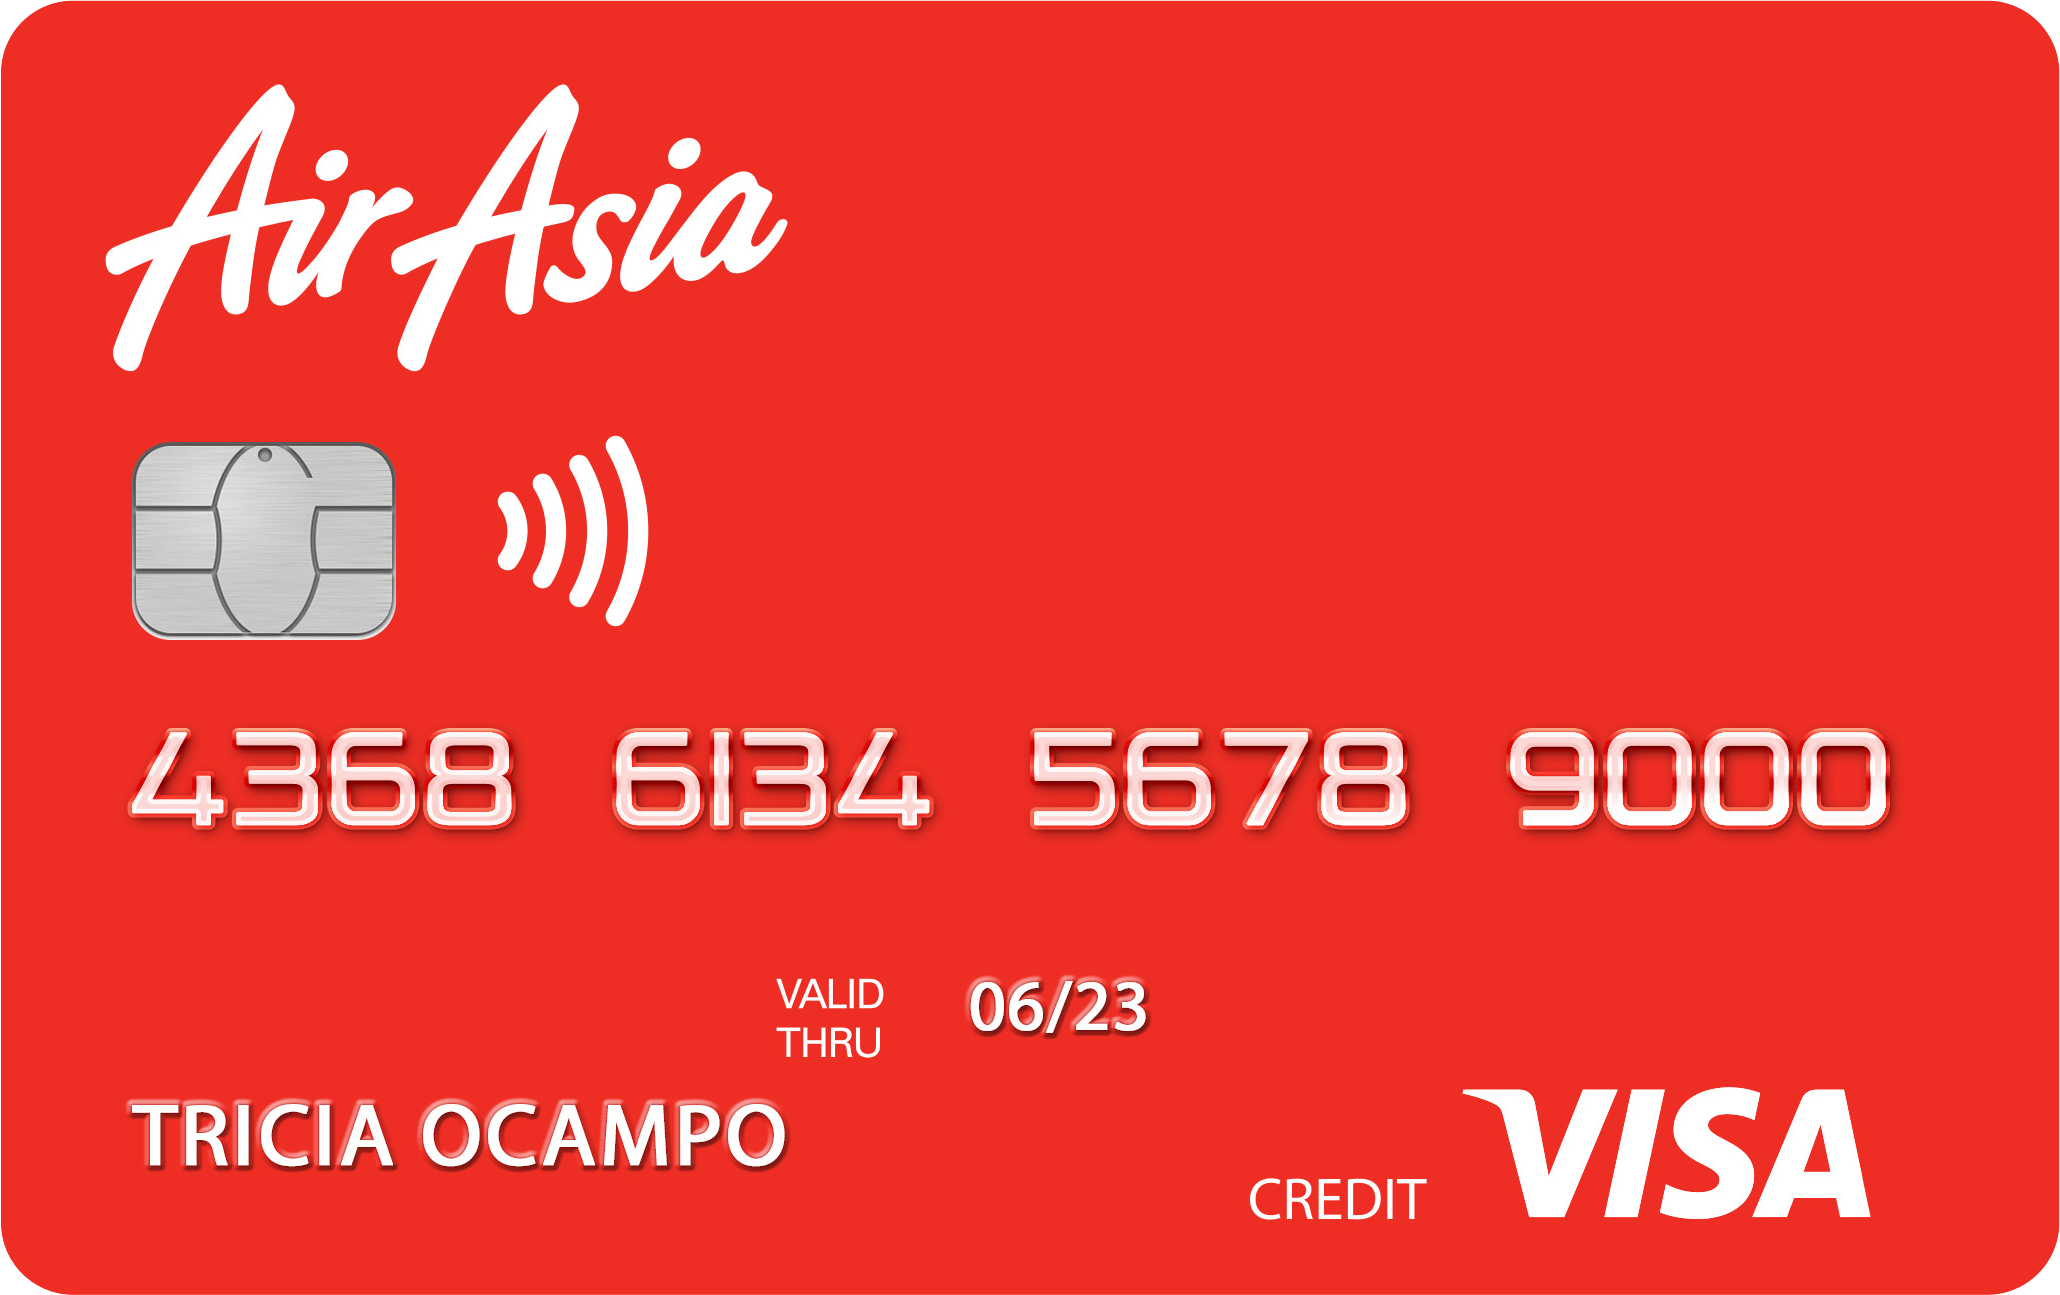 AirAsia Gold Card